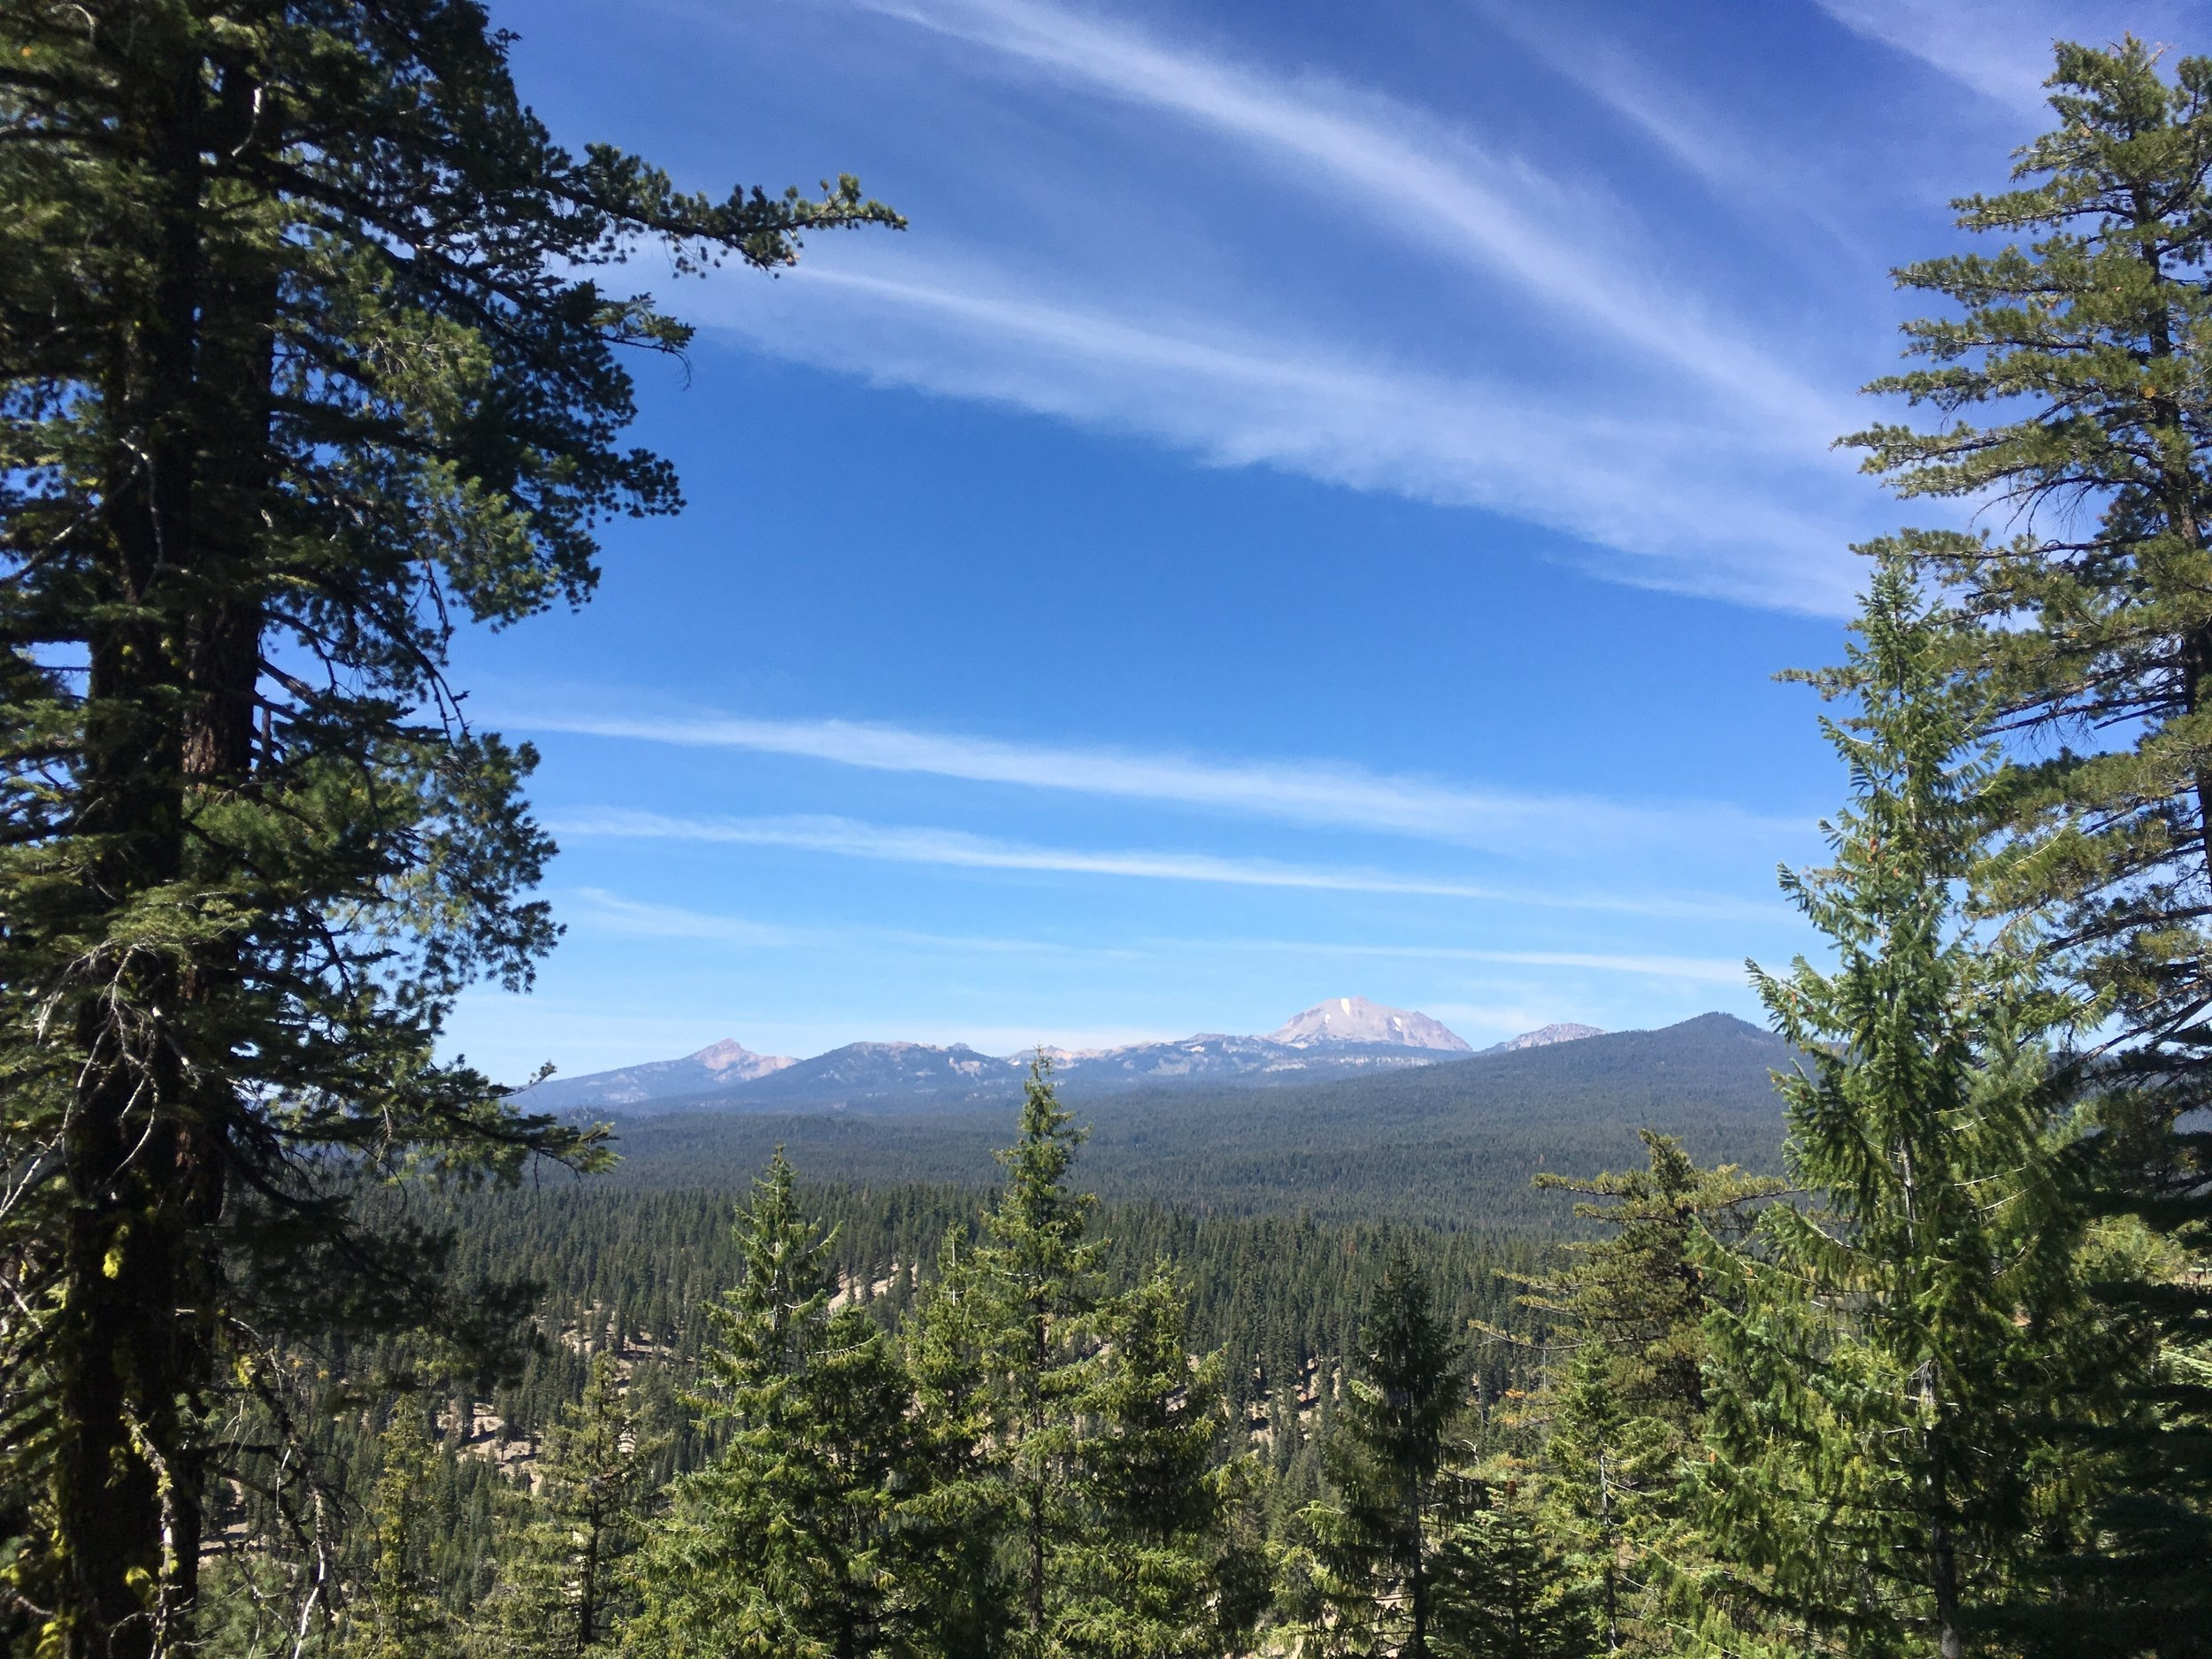 Brokeoff Mtn and Mt Lassen. Long ago they were part of the same mega volcano.